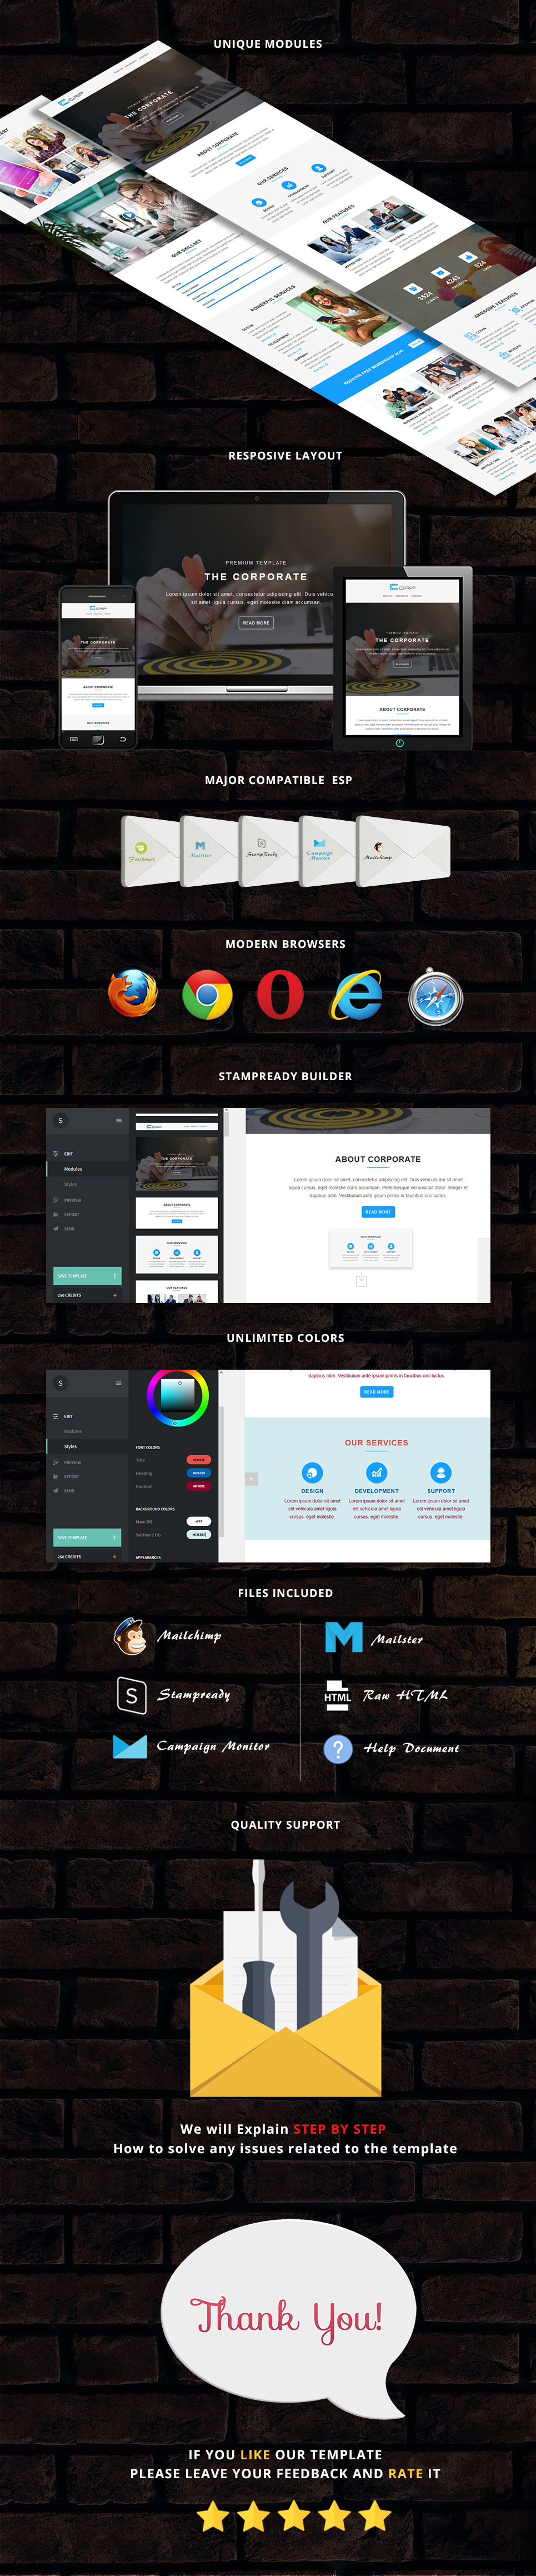 Corp - Responsive Email Template + Stampready Builder corp - responsive email template (newsletters) Corp – Responsive Email Template (Newsletters) corp presentation